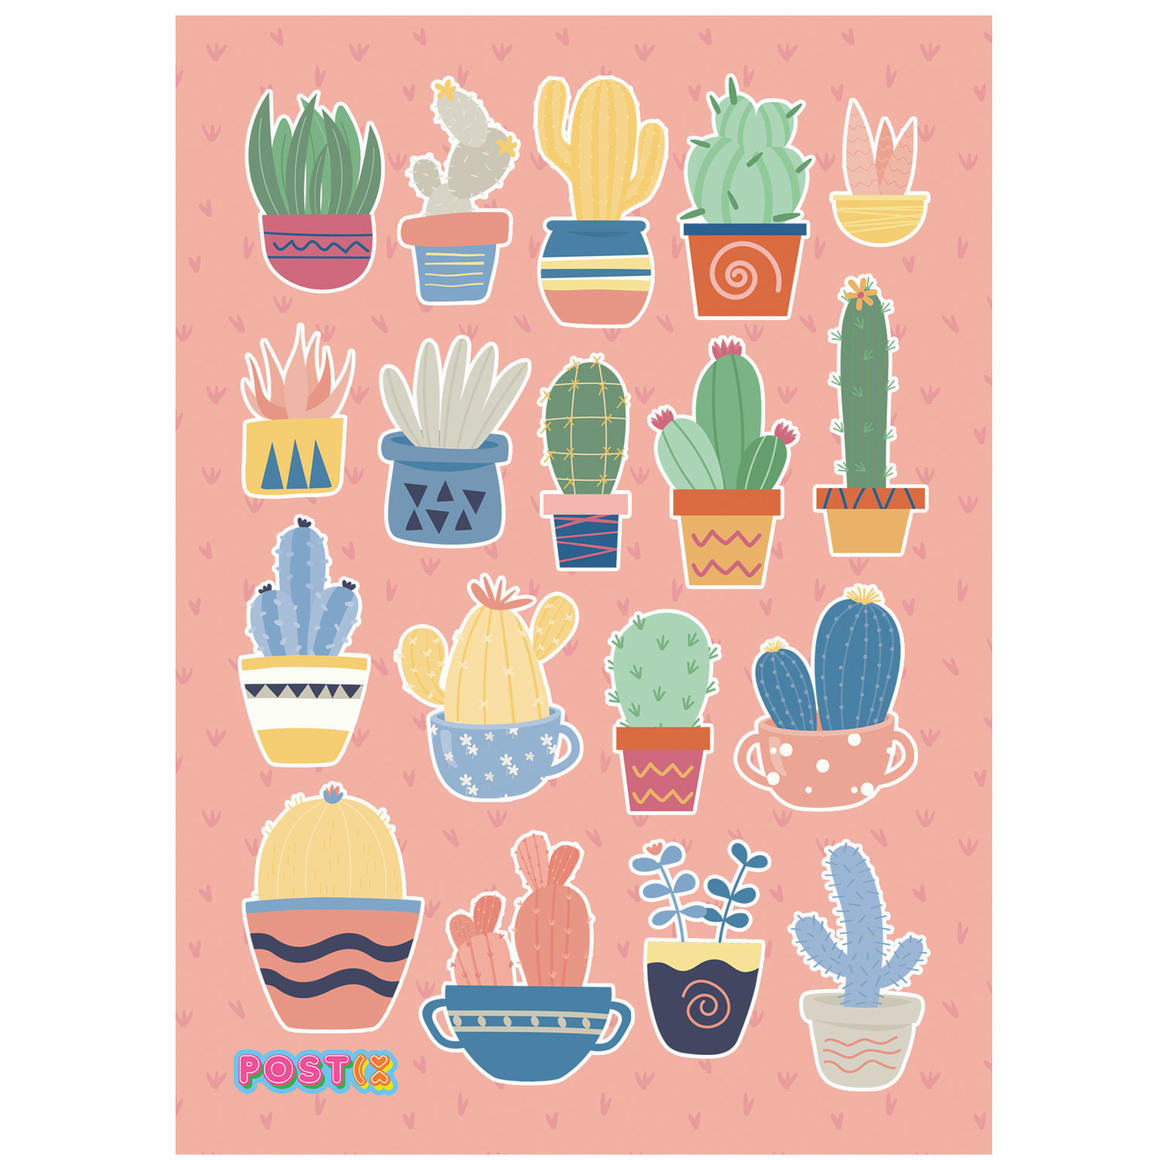 CACTUS COLLECTION A6 GLOSSY STICKER SHEET   Trada Marketplace